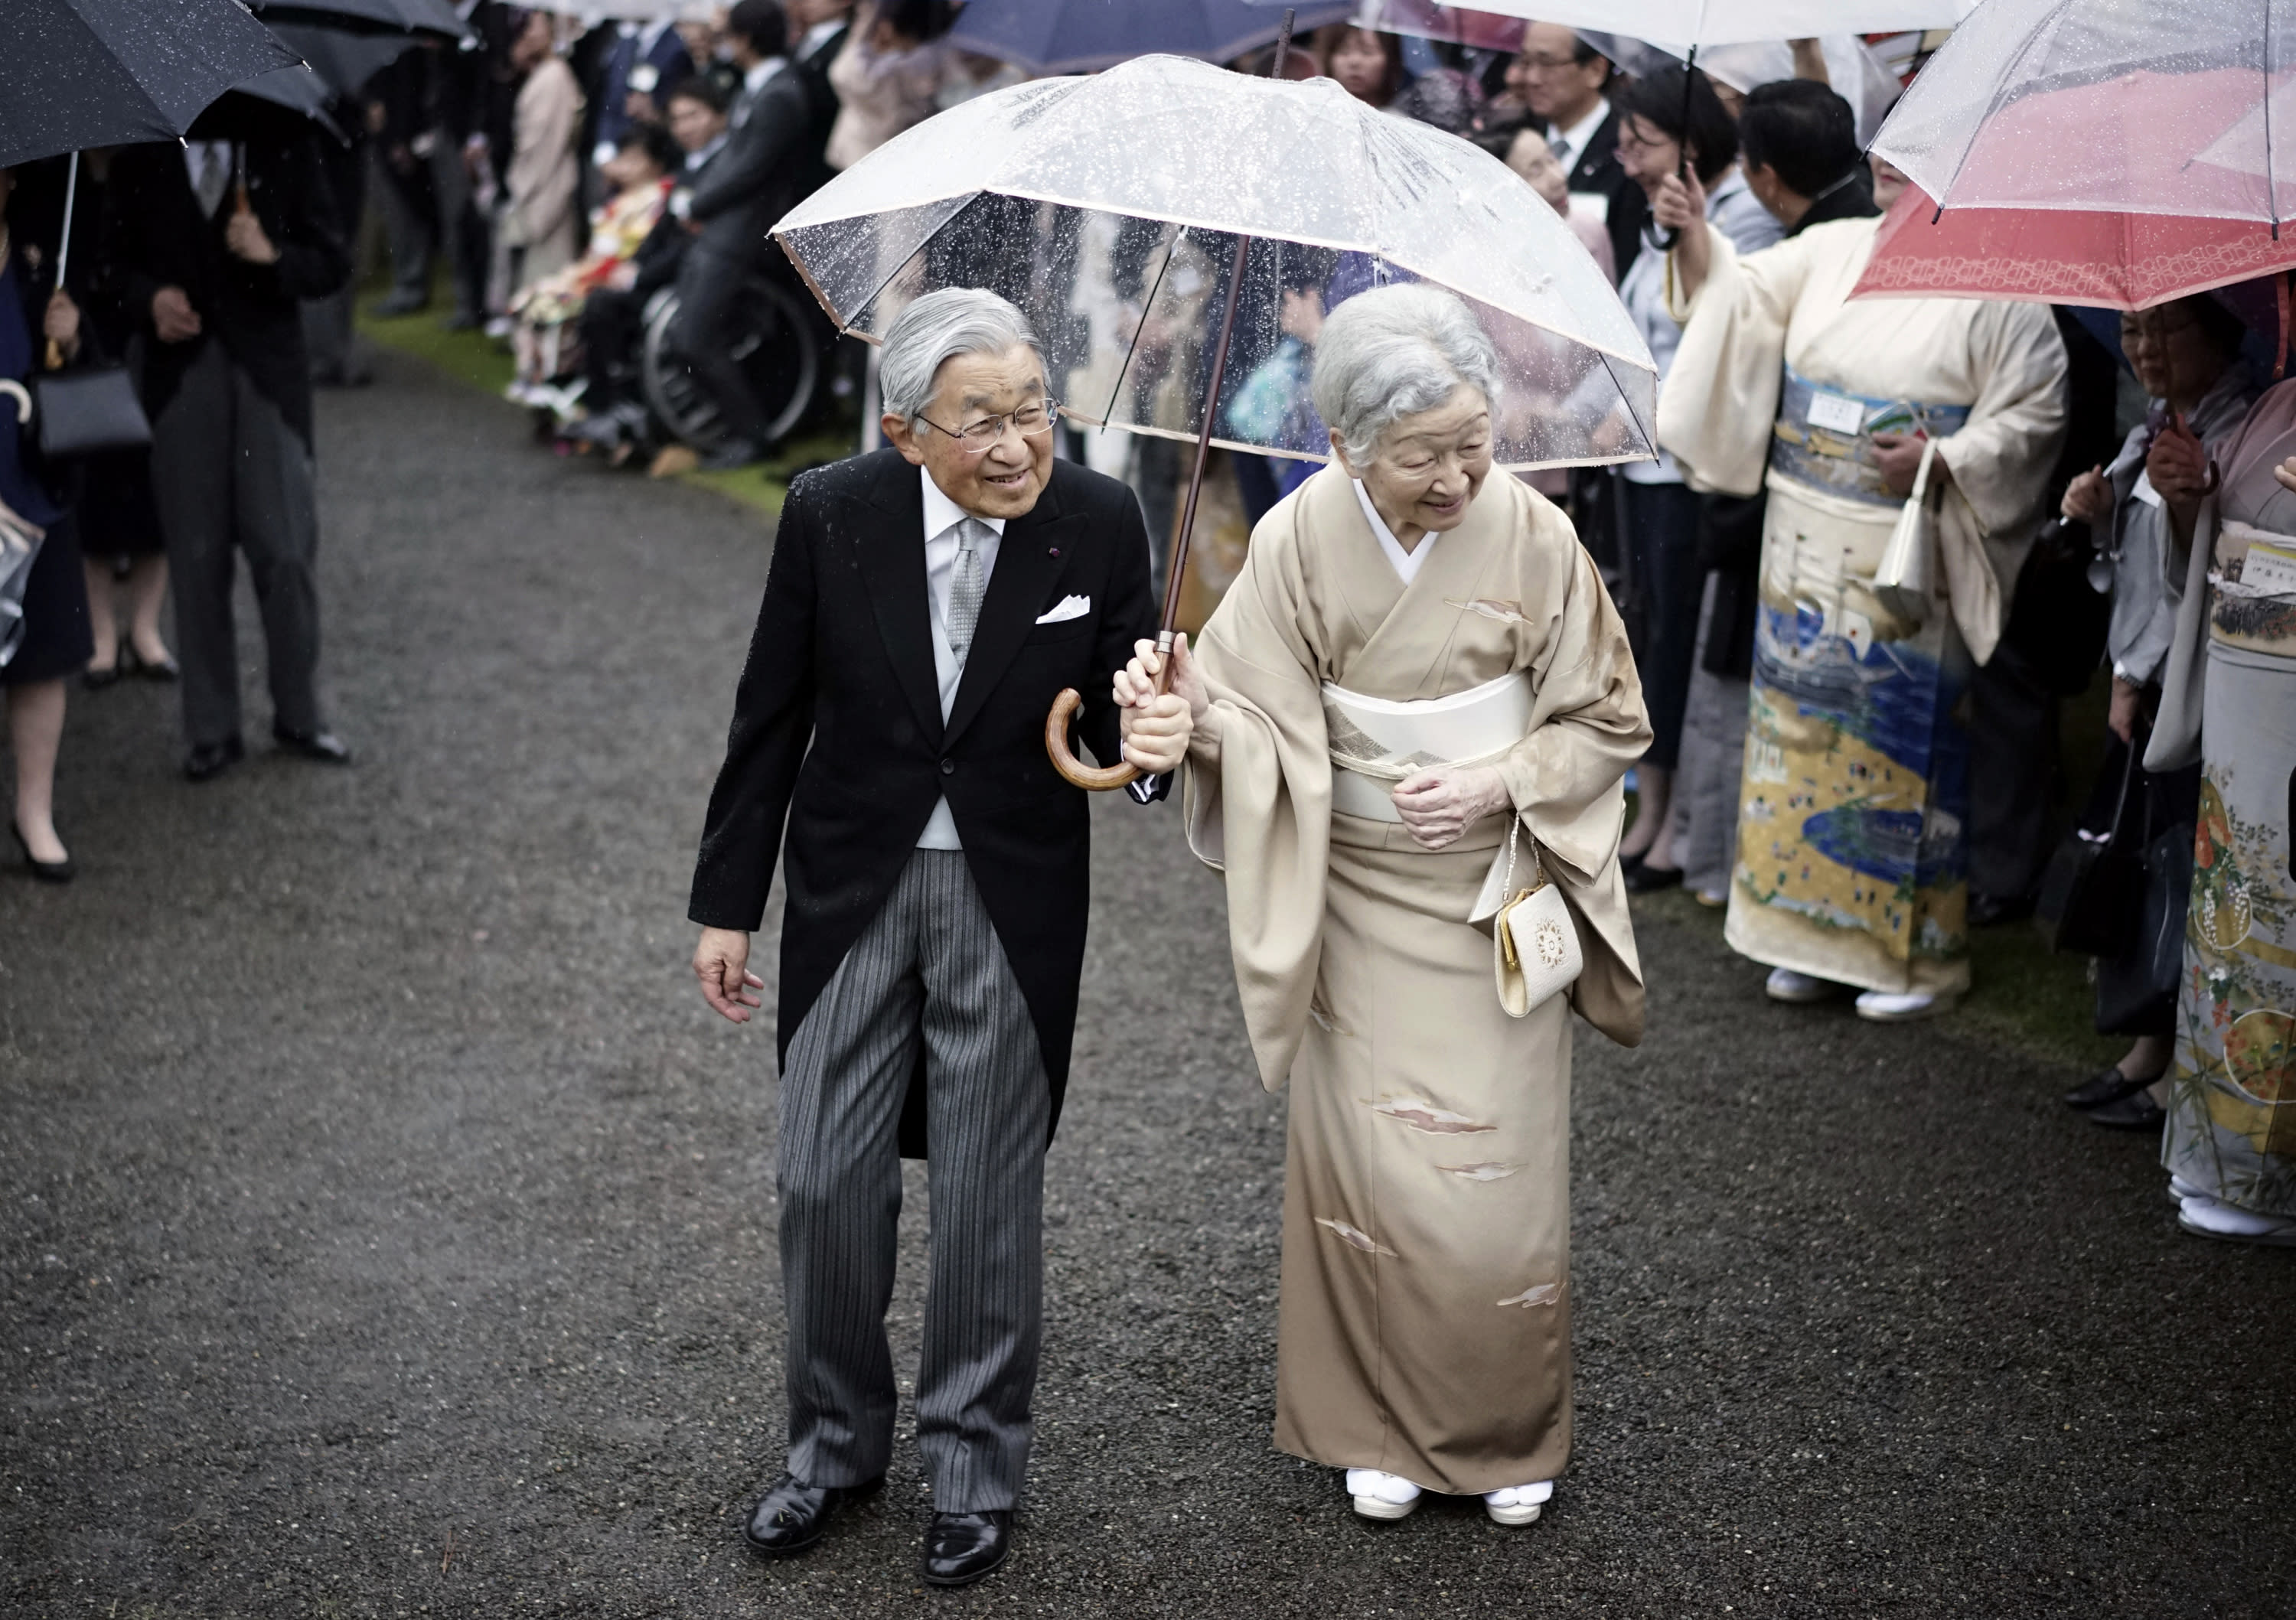 FILE - In this Nov. 9, 2018, file photo, Japan's Emperor Akihito, left, and Empress Michiko, right, greet the guests during the autumn garden party at the Akasaka Palace imperial garden in Tokyo. On May 1, 2019, when Crown Prince Naruhito becomes the new emperor. Naruhito will receive a much more important inheritance: The deep respect and affection his father, soon-to-abdicate Emperor Akihito, has accumulated over his three-decade reign. (AP Photo/Eugene Hoshiko, File)